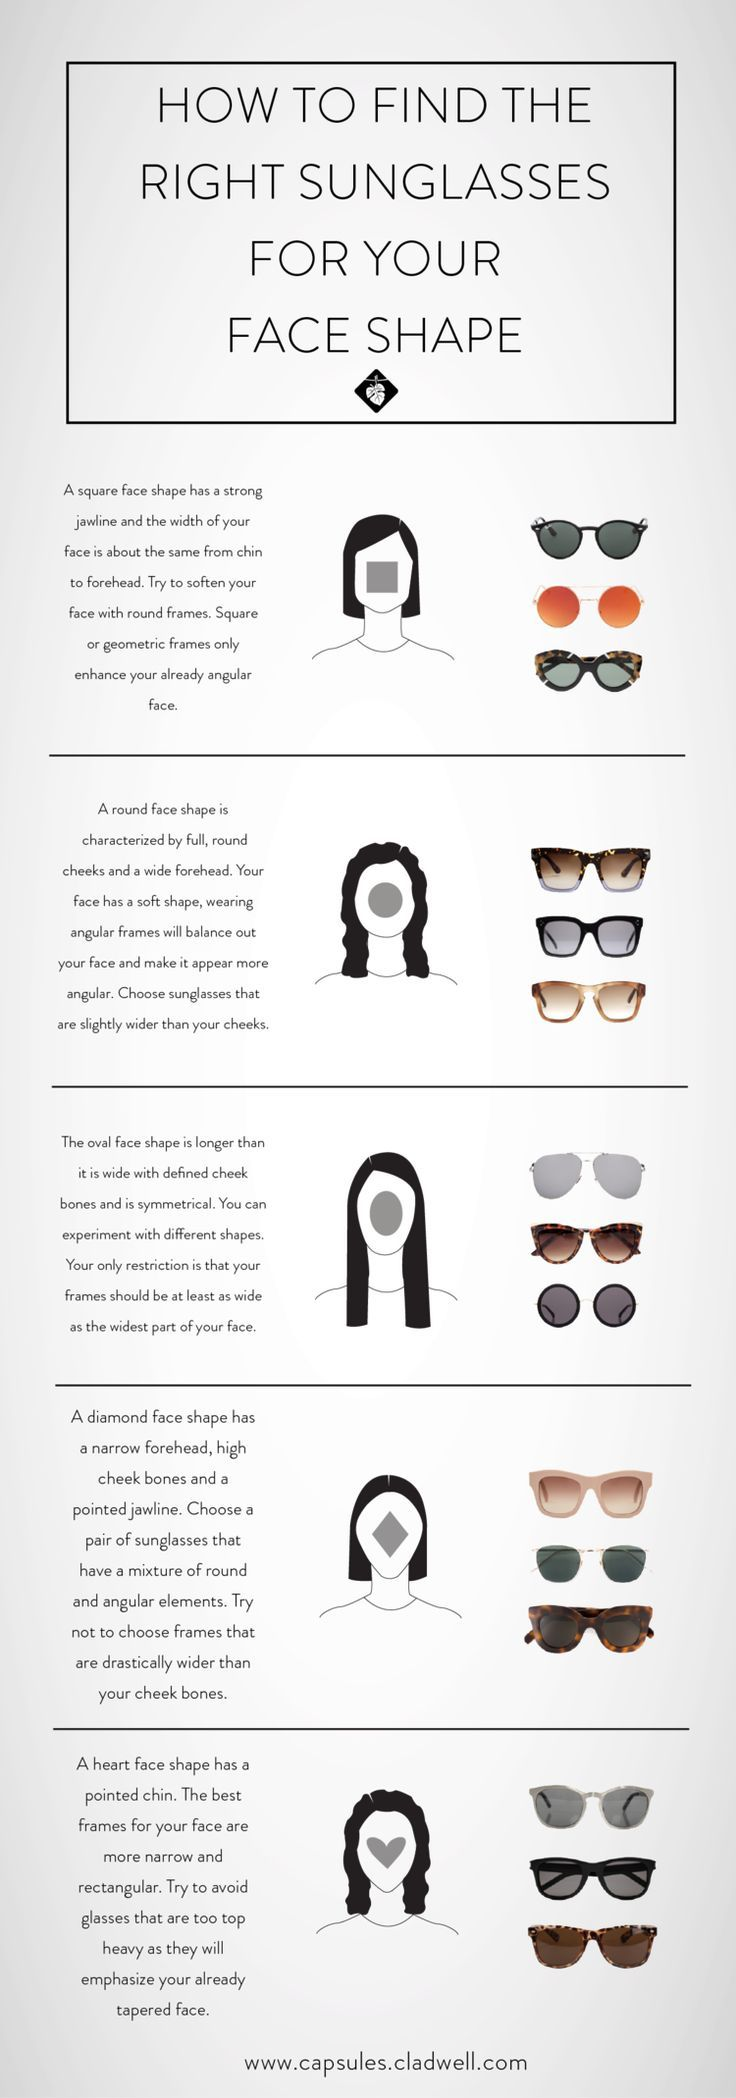 how to find right sunglasses